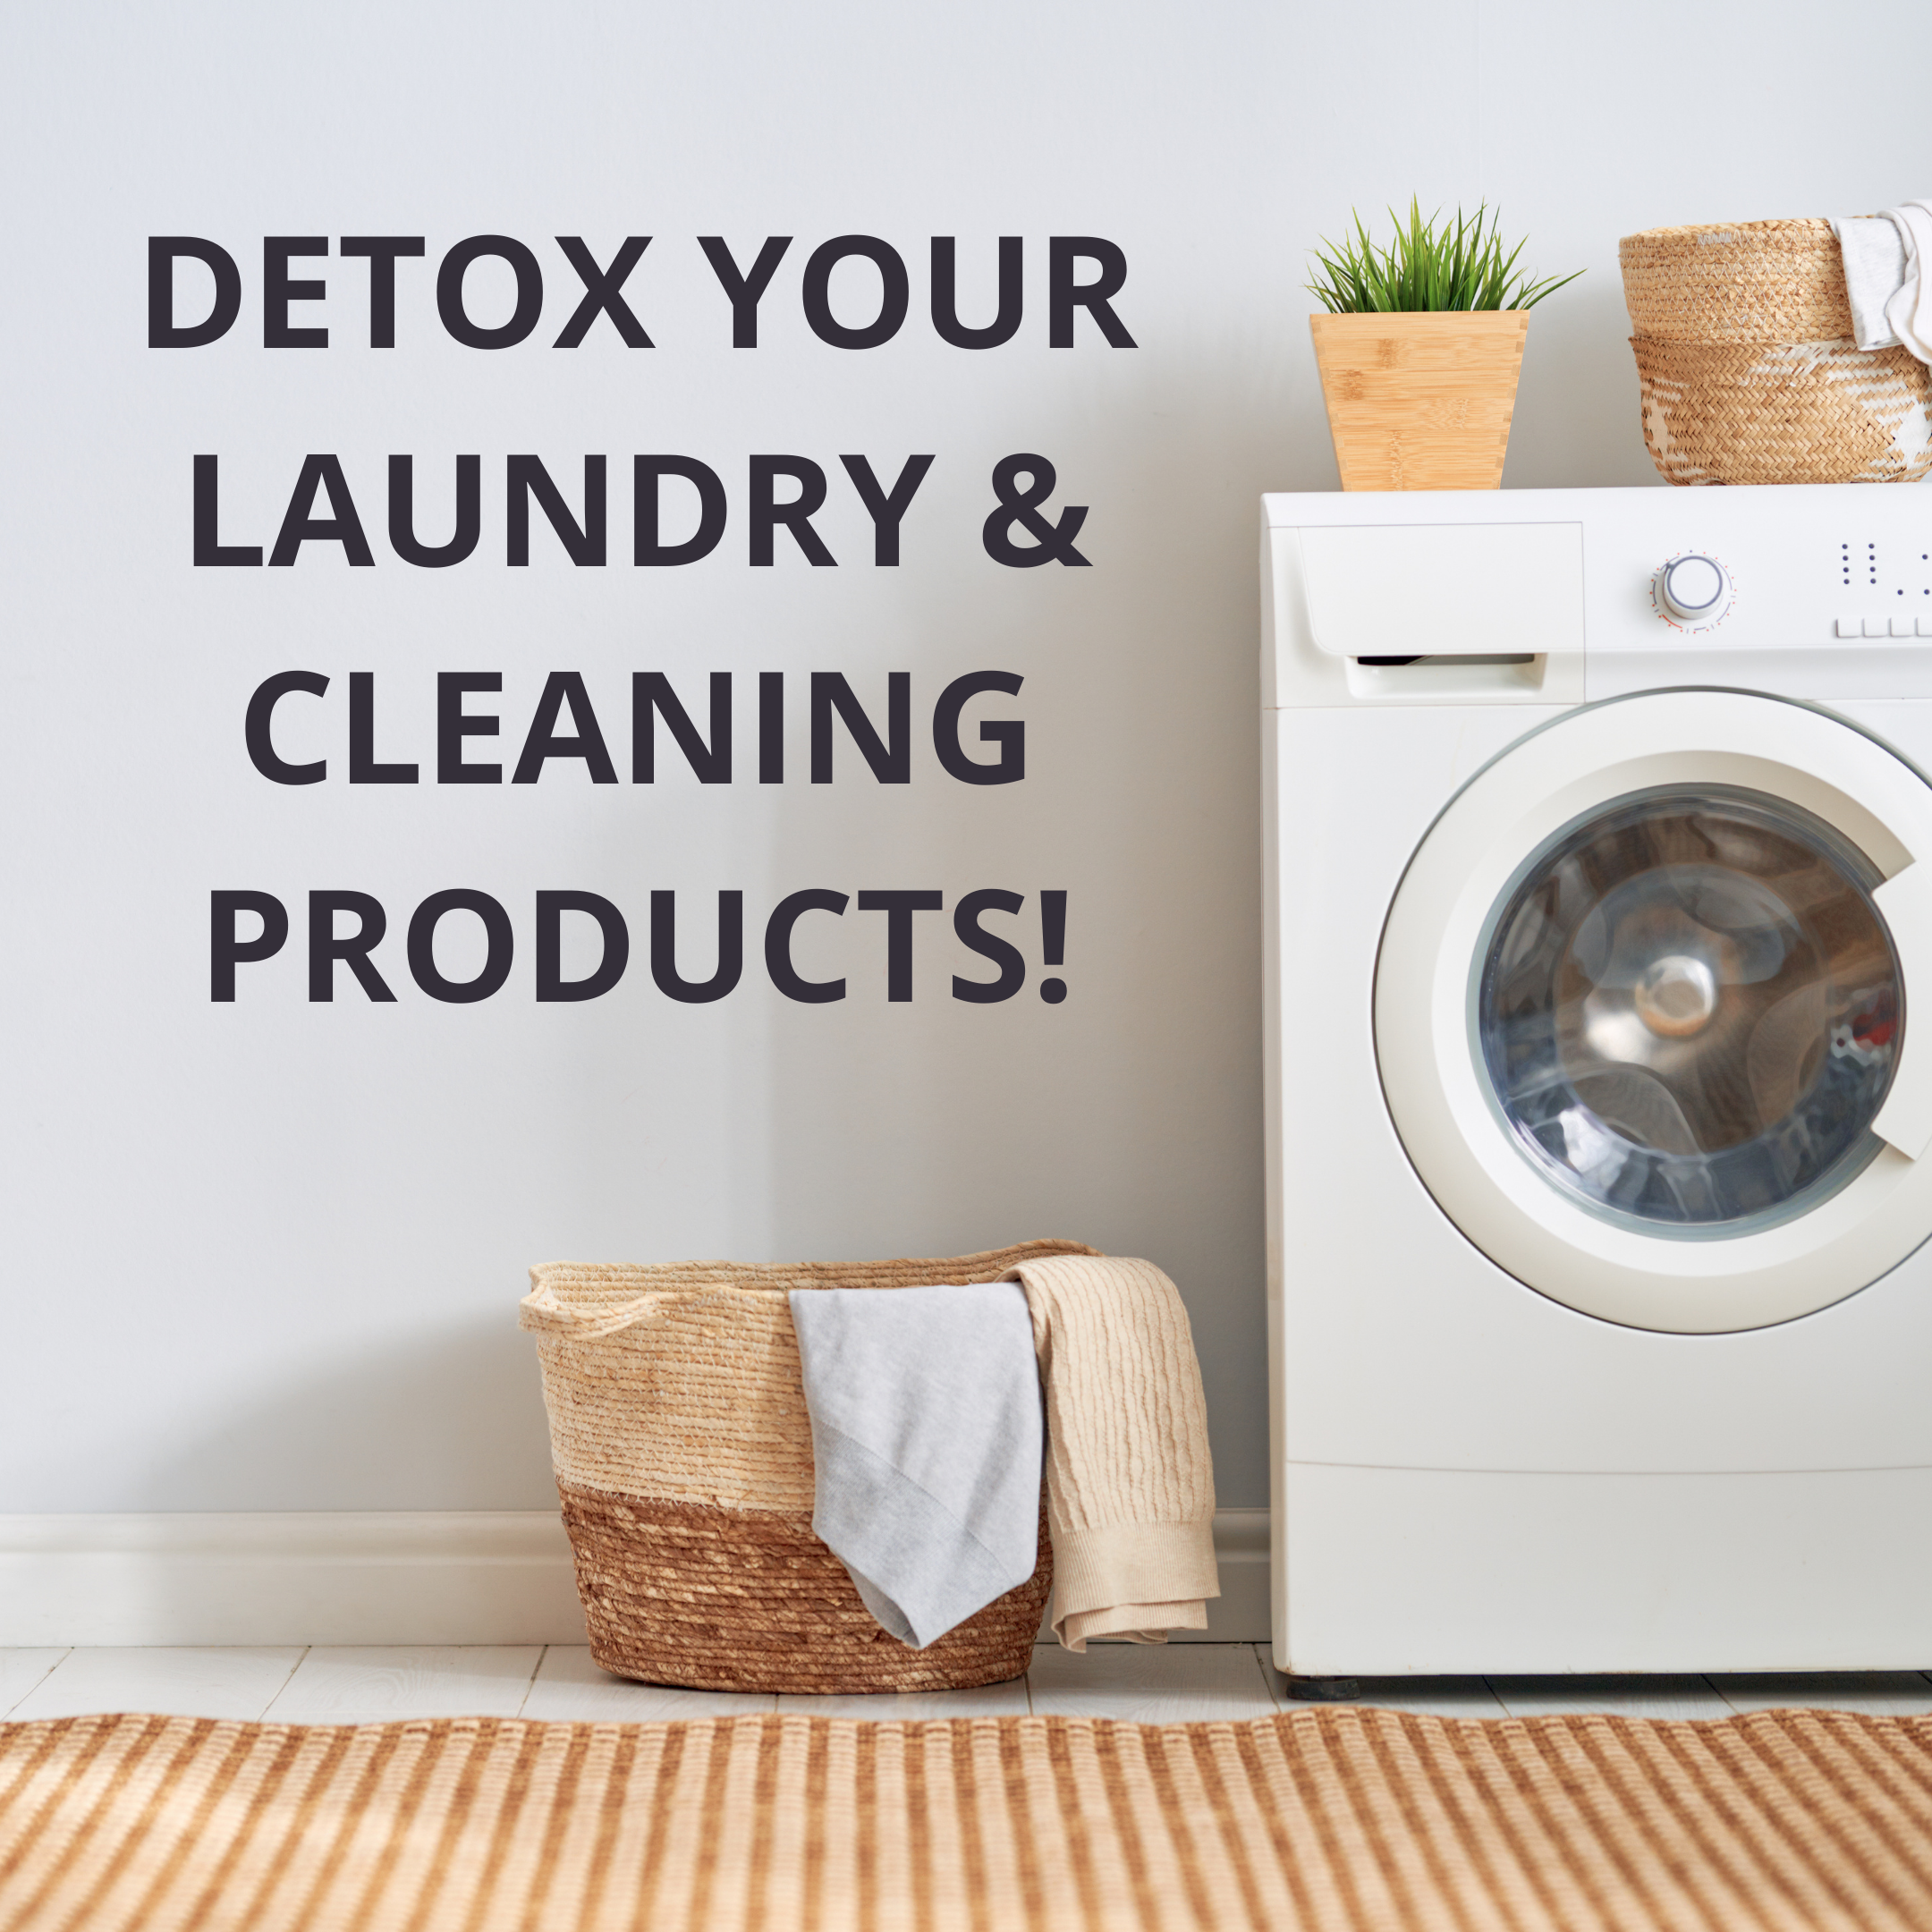 My Green Fills is my absolute favorite for virtually all home cleaning needs, from laundry to sprays to dish soap. This link will get you a HUGE discount on your first order!